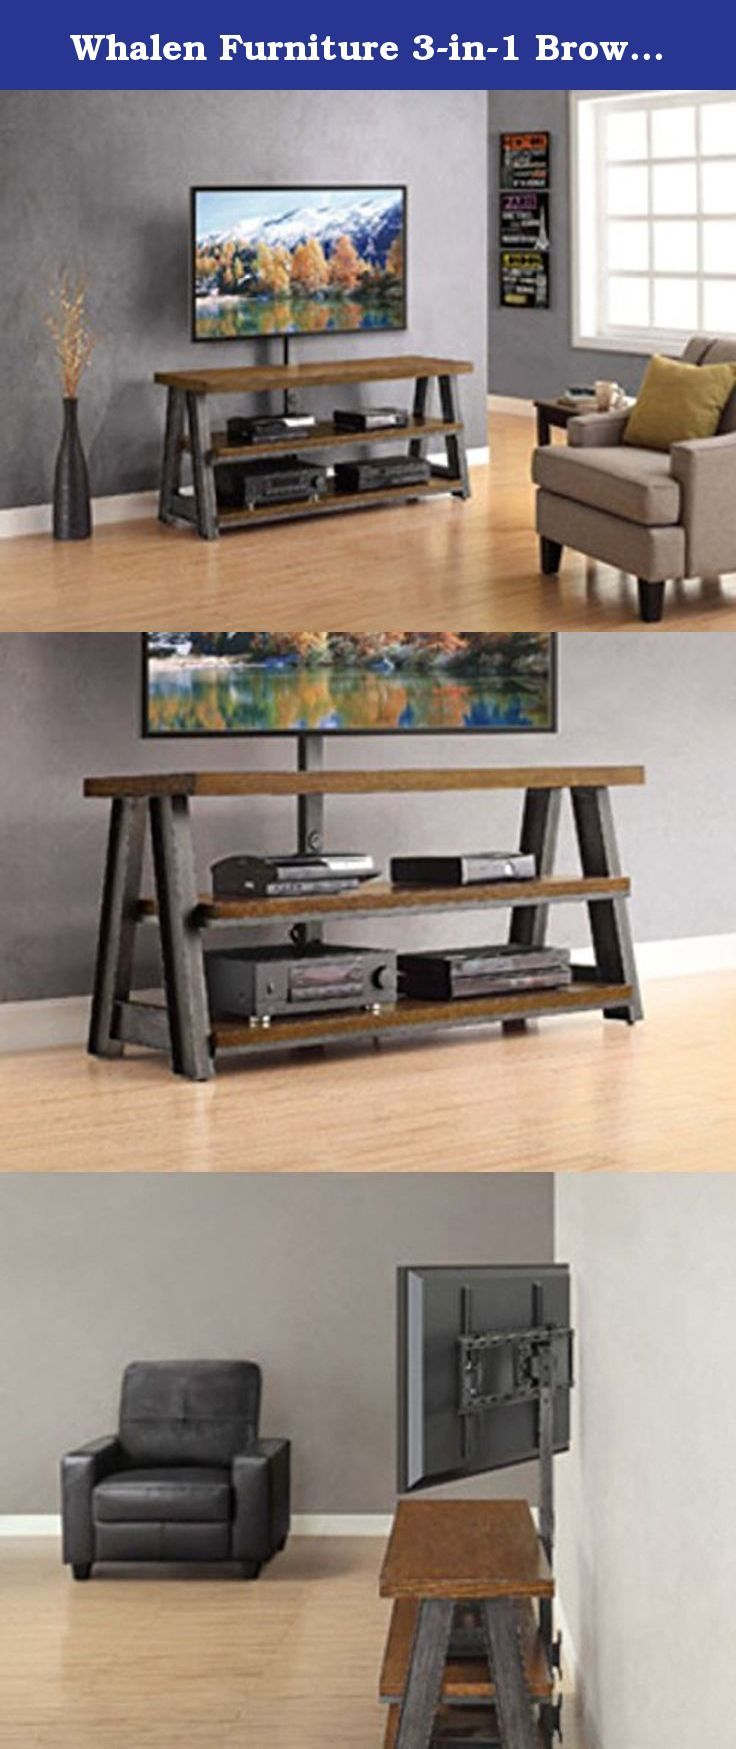 """Whalen Furniture 3-in-1 Brown Tv Stand for Tvs up to 70"""". Add rustic charm and modern function to your home theater with the Better Homes and Gardens Mercer 3-in-1 TV Stand. Featuring hand-finished metal frame and brown ash veneer shelves, this unit is the perfect solution for your 70-inch flat panel TV. The patented 3-in-1 feature allows you to incorporate your TV as a tabletop, swinging floater or wall mount. The included 2.0 USB hub offers easy accessory integration. The tilt and…"""